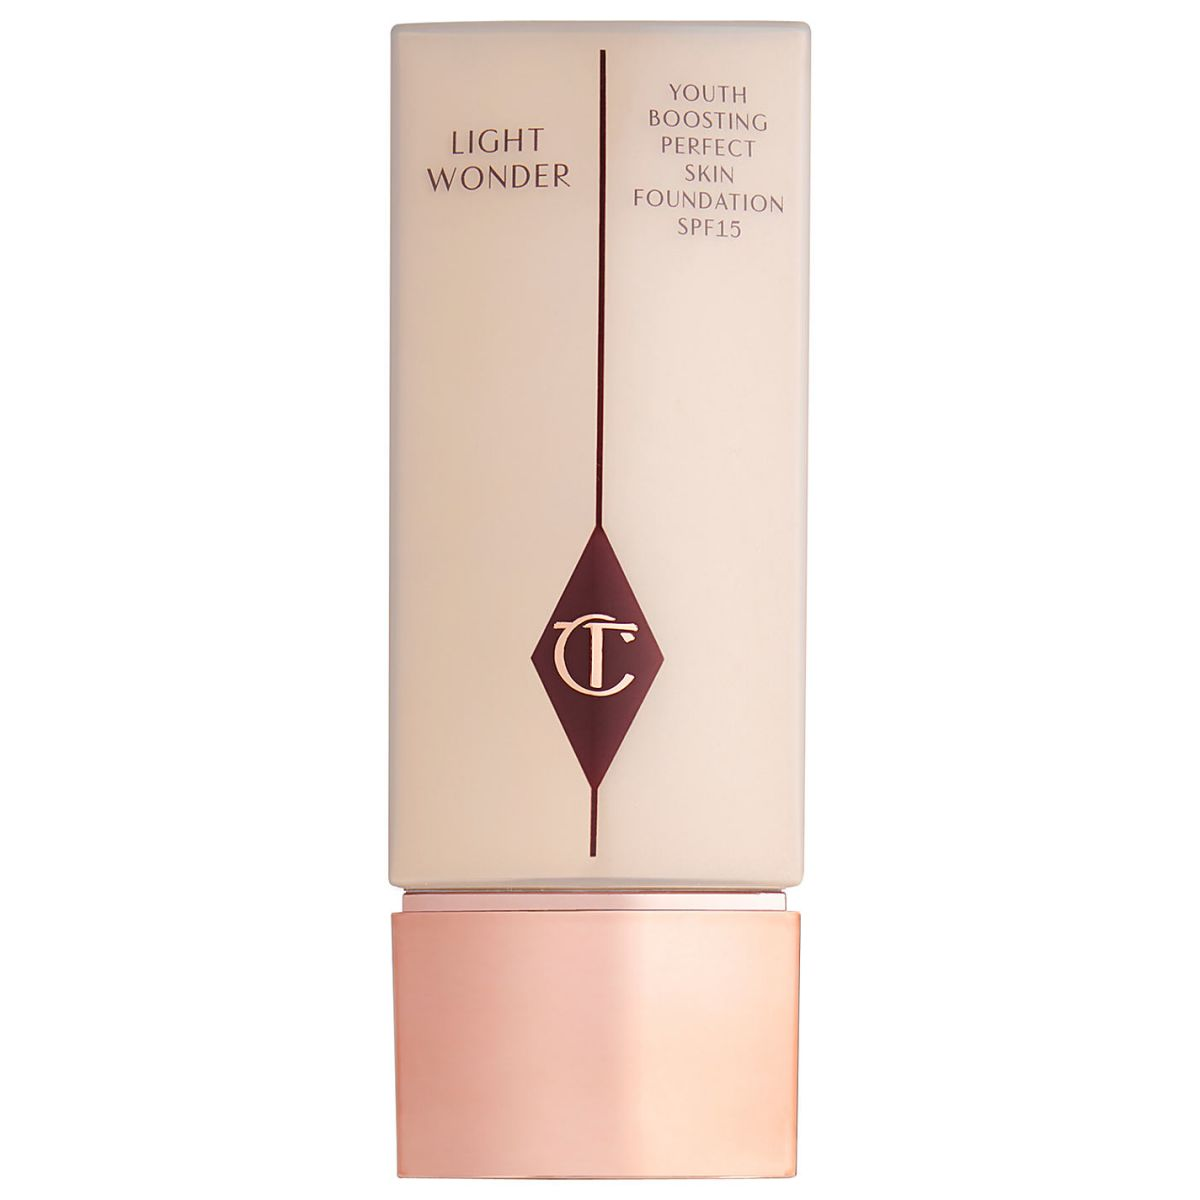 Ίδρυμα Light Wonder Charlotte Tilbury